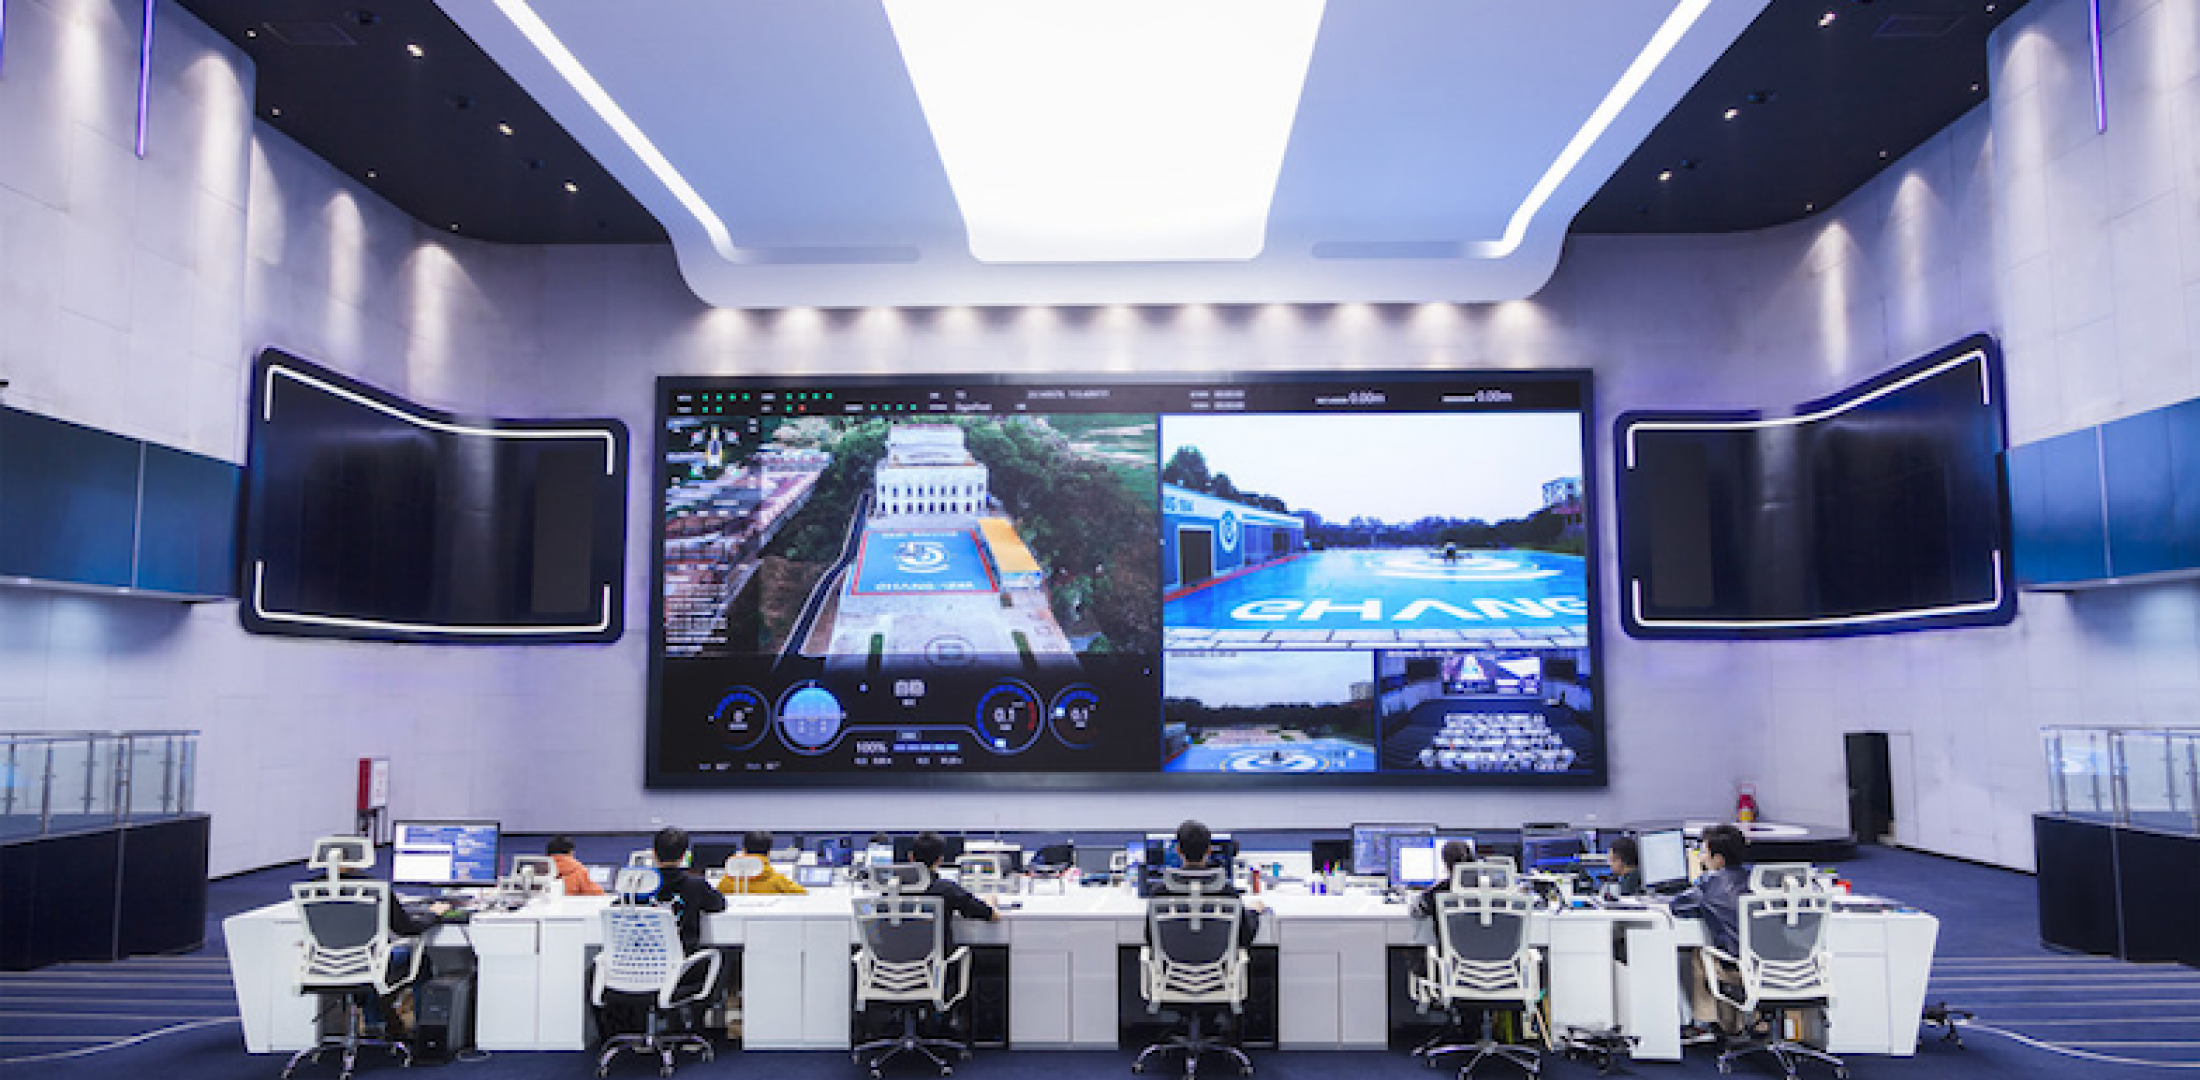 EHang plans to open a command and control center for autonomous eVTOL flights in Guangzhou, China.